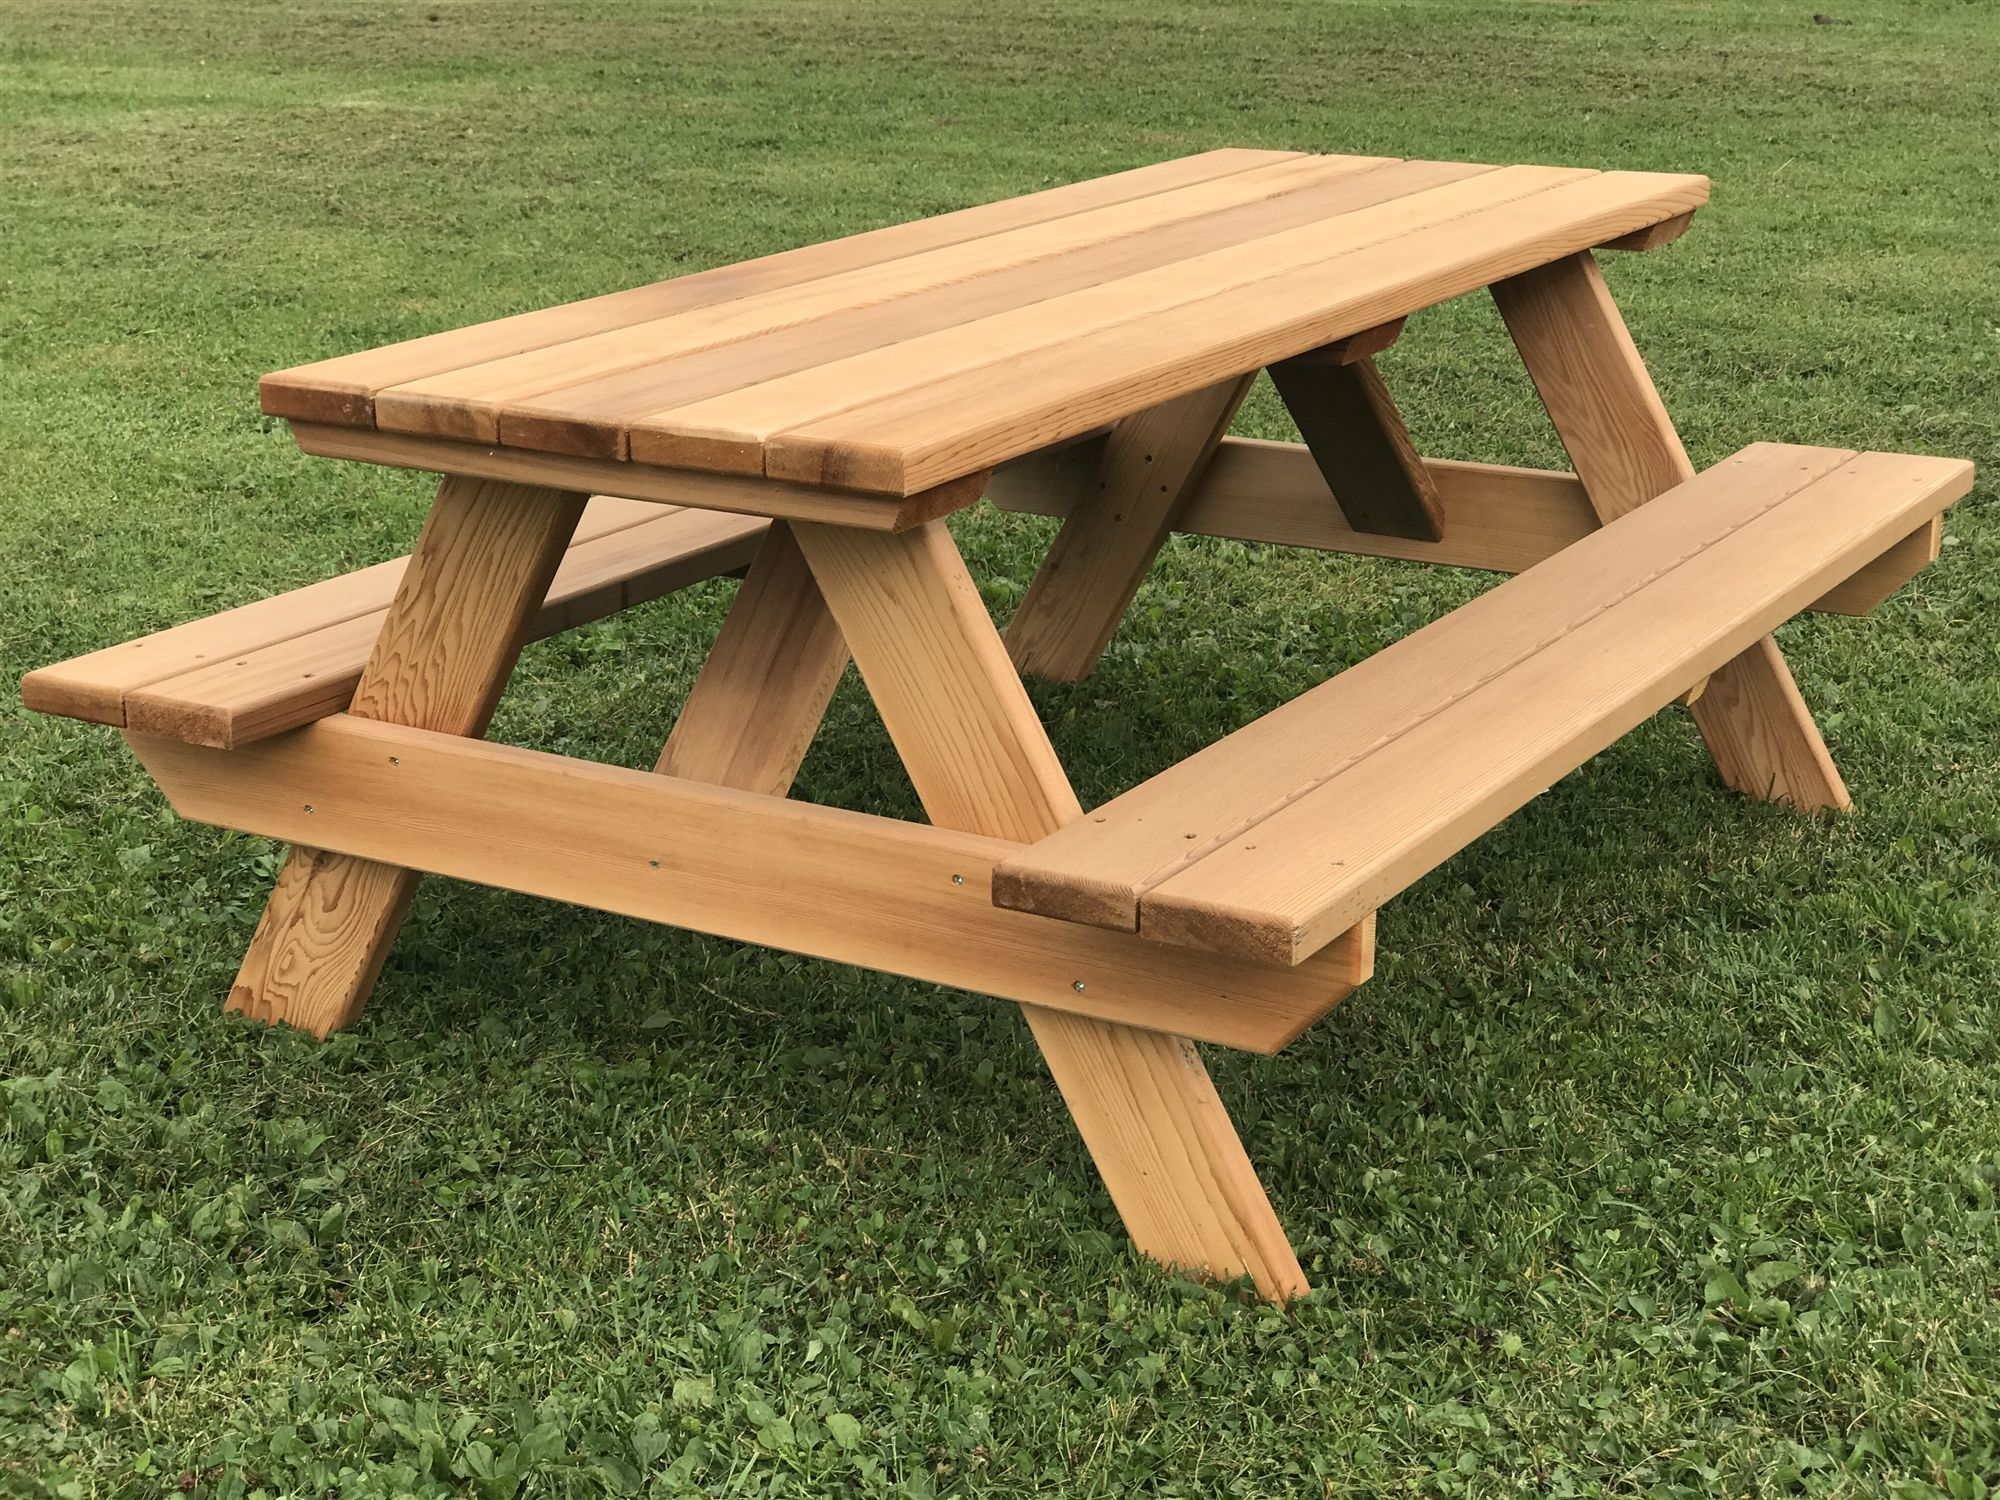 48 Kids Picnic Table Easy To Move Seats 6 Children 48 Long In 2020 Kids Picnic Table Kids Picnic Table Plans Picnic Table Plans